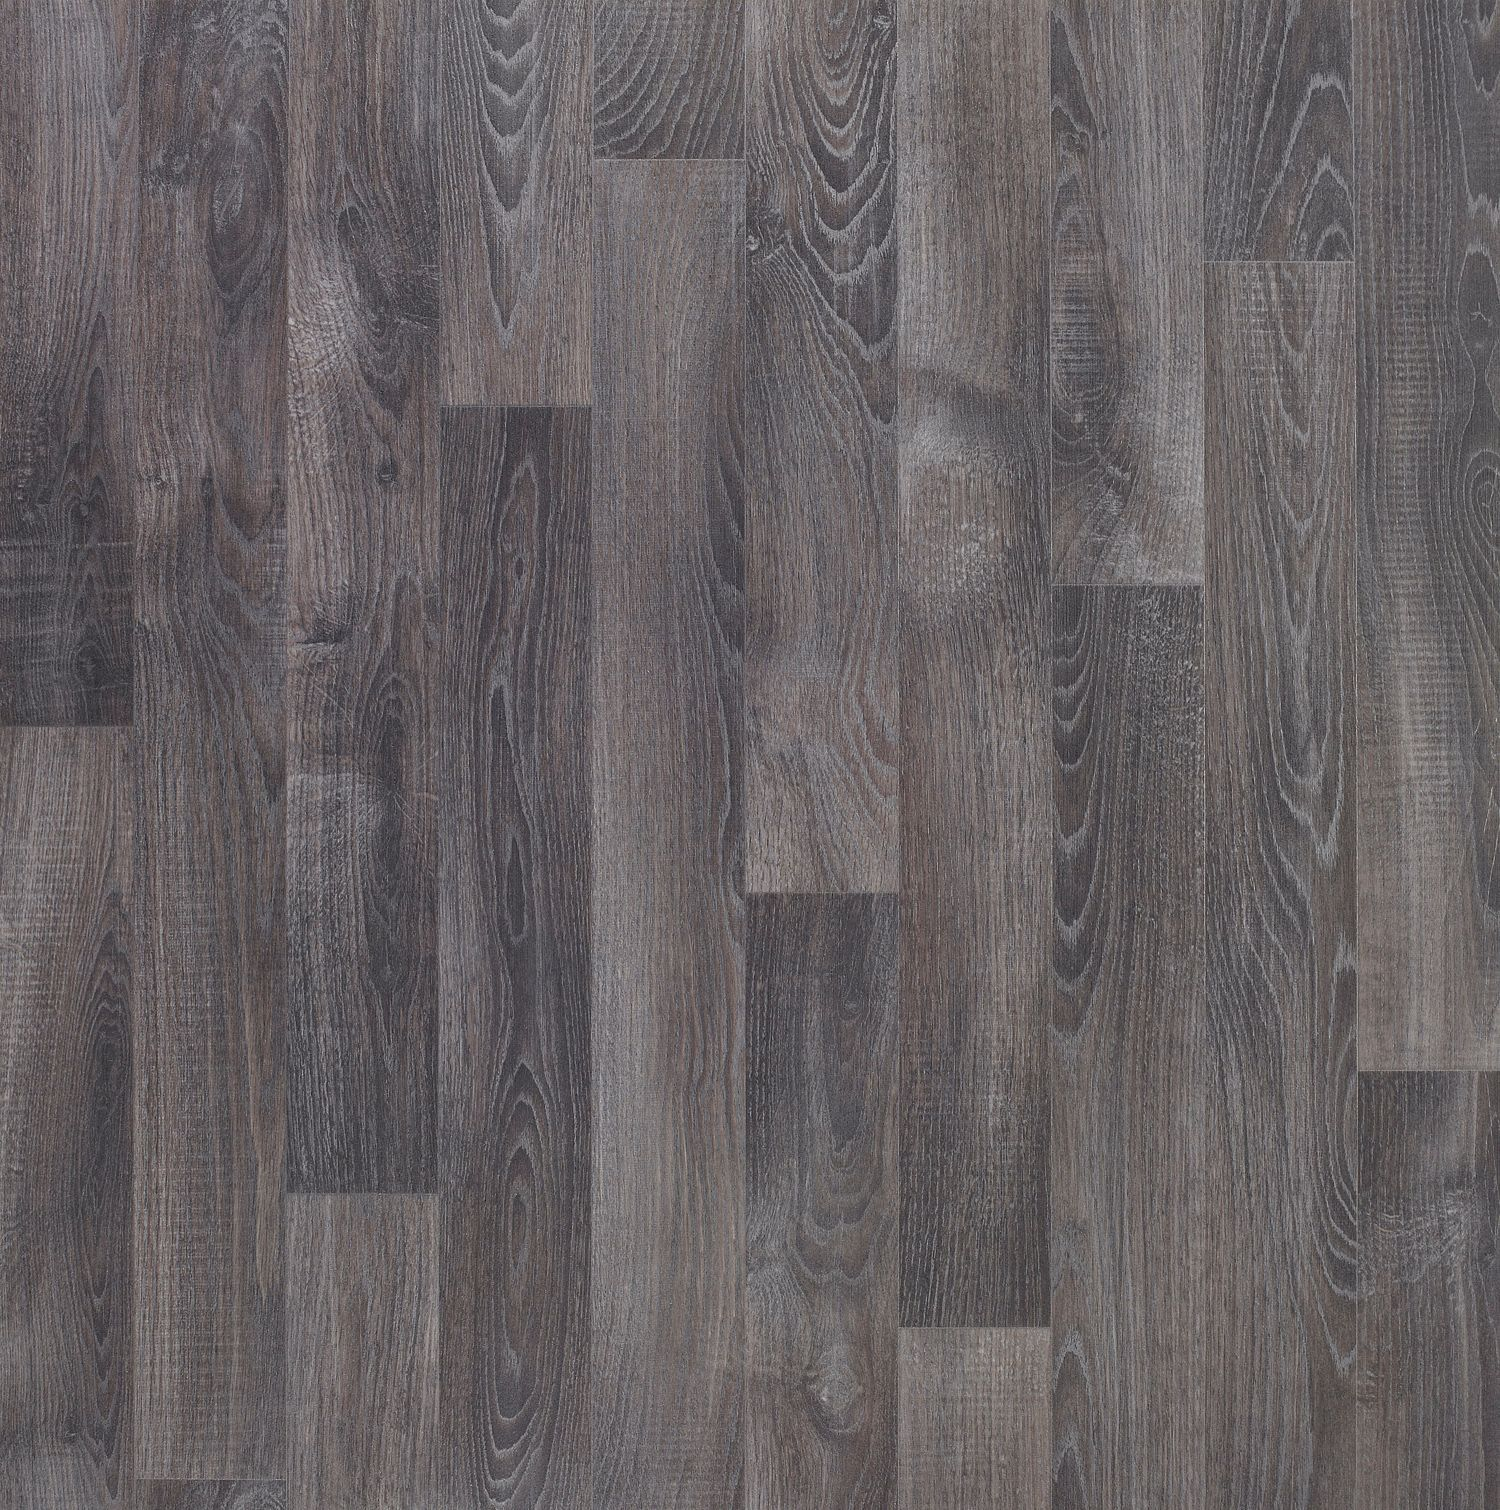 Dark grey oak effect vinyl flooring 4 m departments for Dark wood vinyl flooring